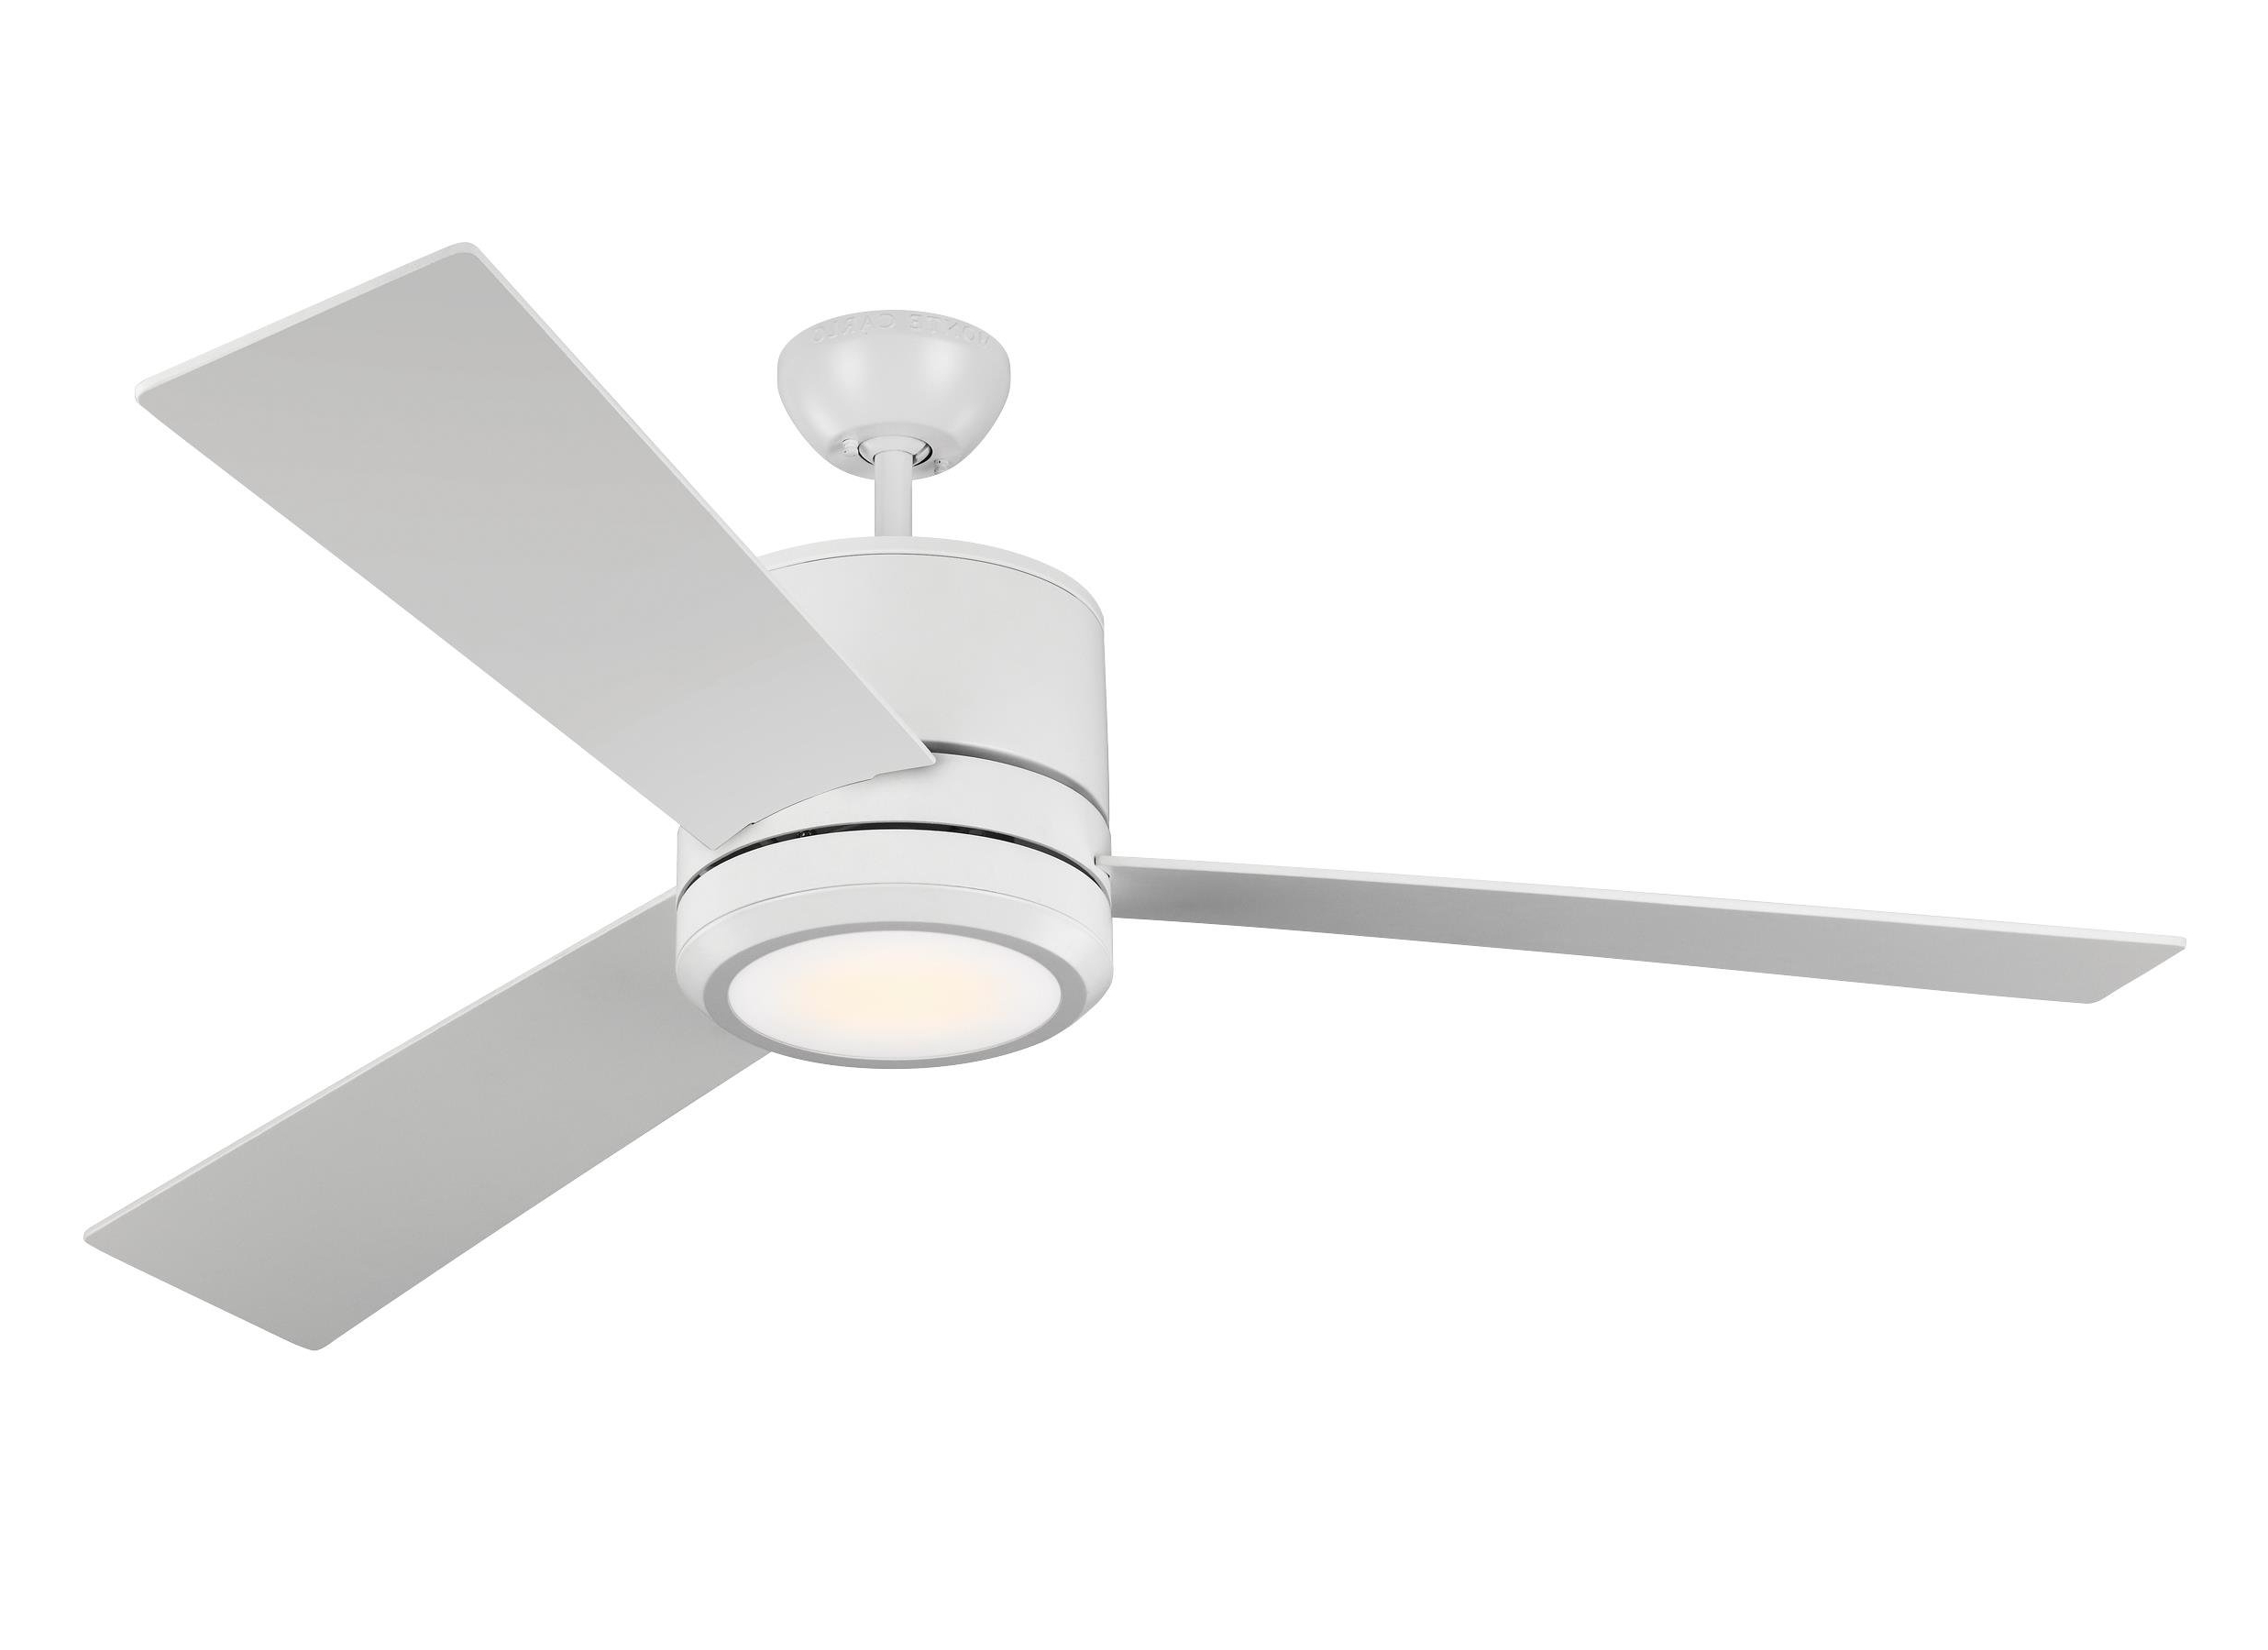 """Troxler 3 Blade Ceiling Fans Pertaining To 2019 56"""" Ossu 3 Blade Led Ceiling Fan, Light Kit Included (View 19 of 20)"""